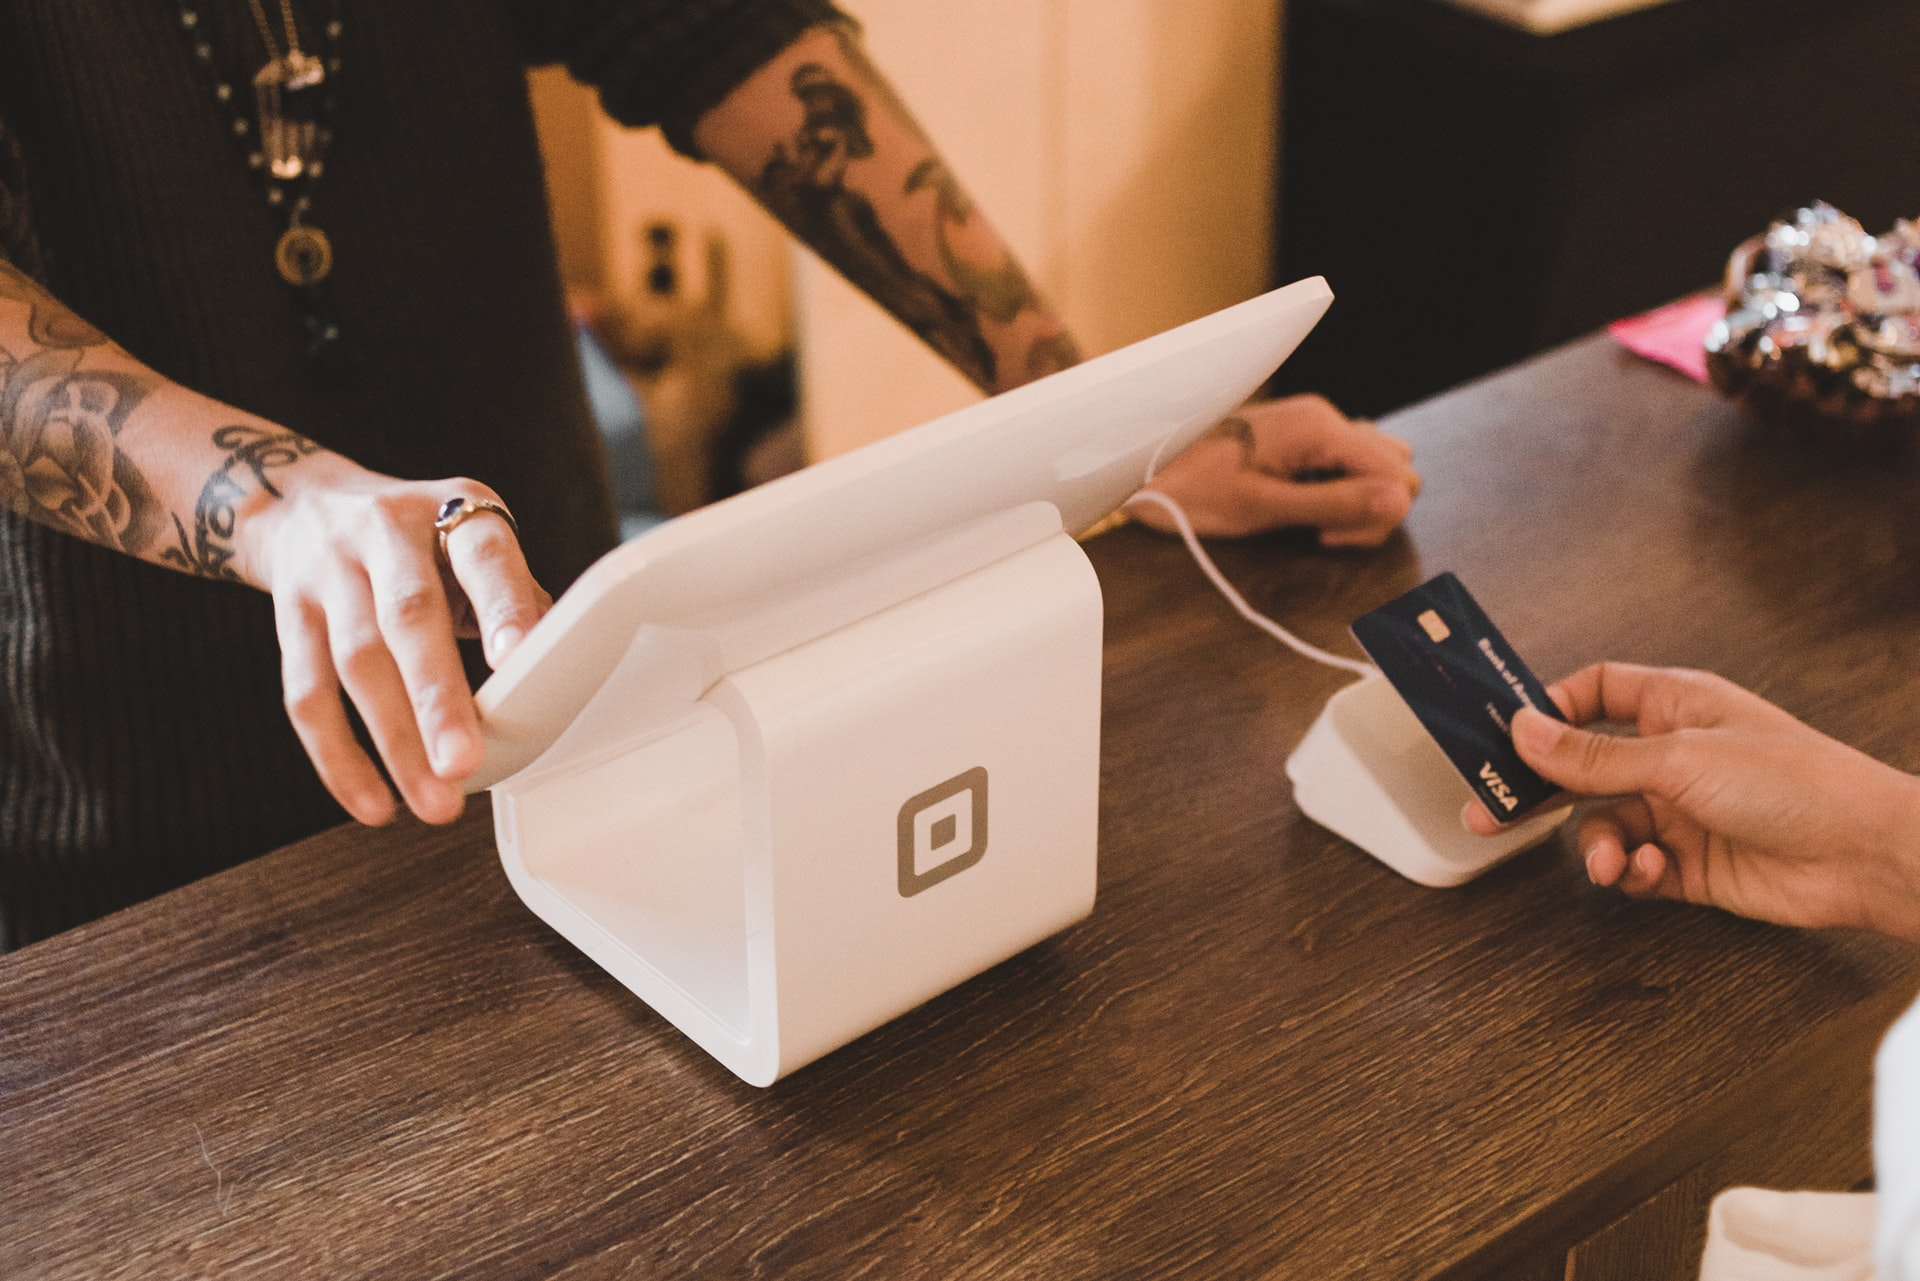 COVID-19 Pushes Contactless Payments Over the Tipping Point